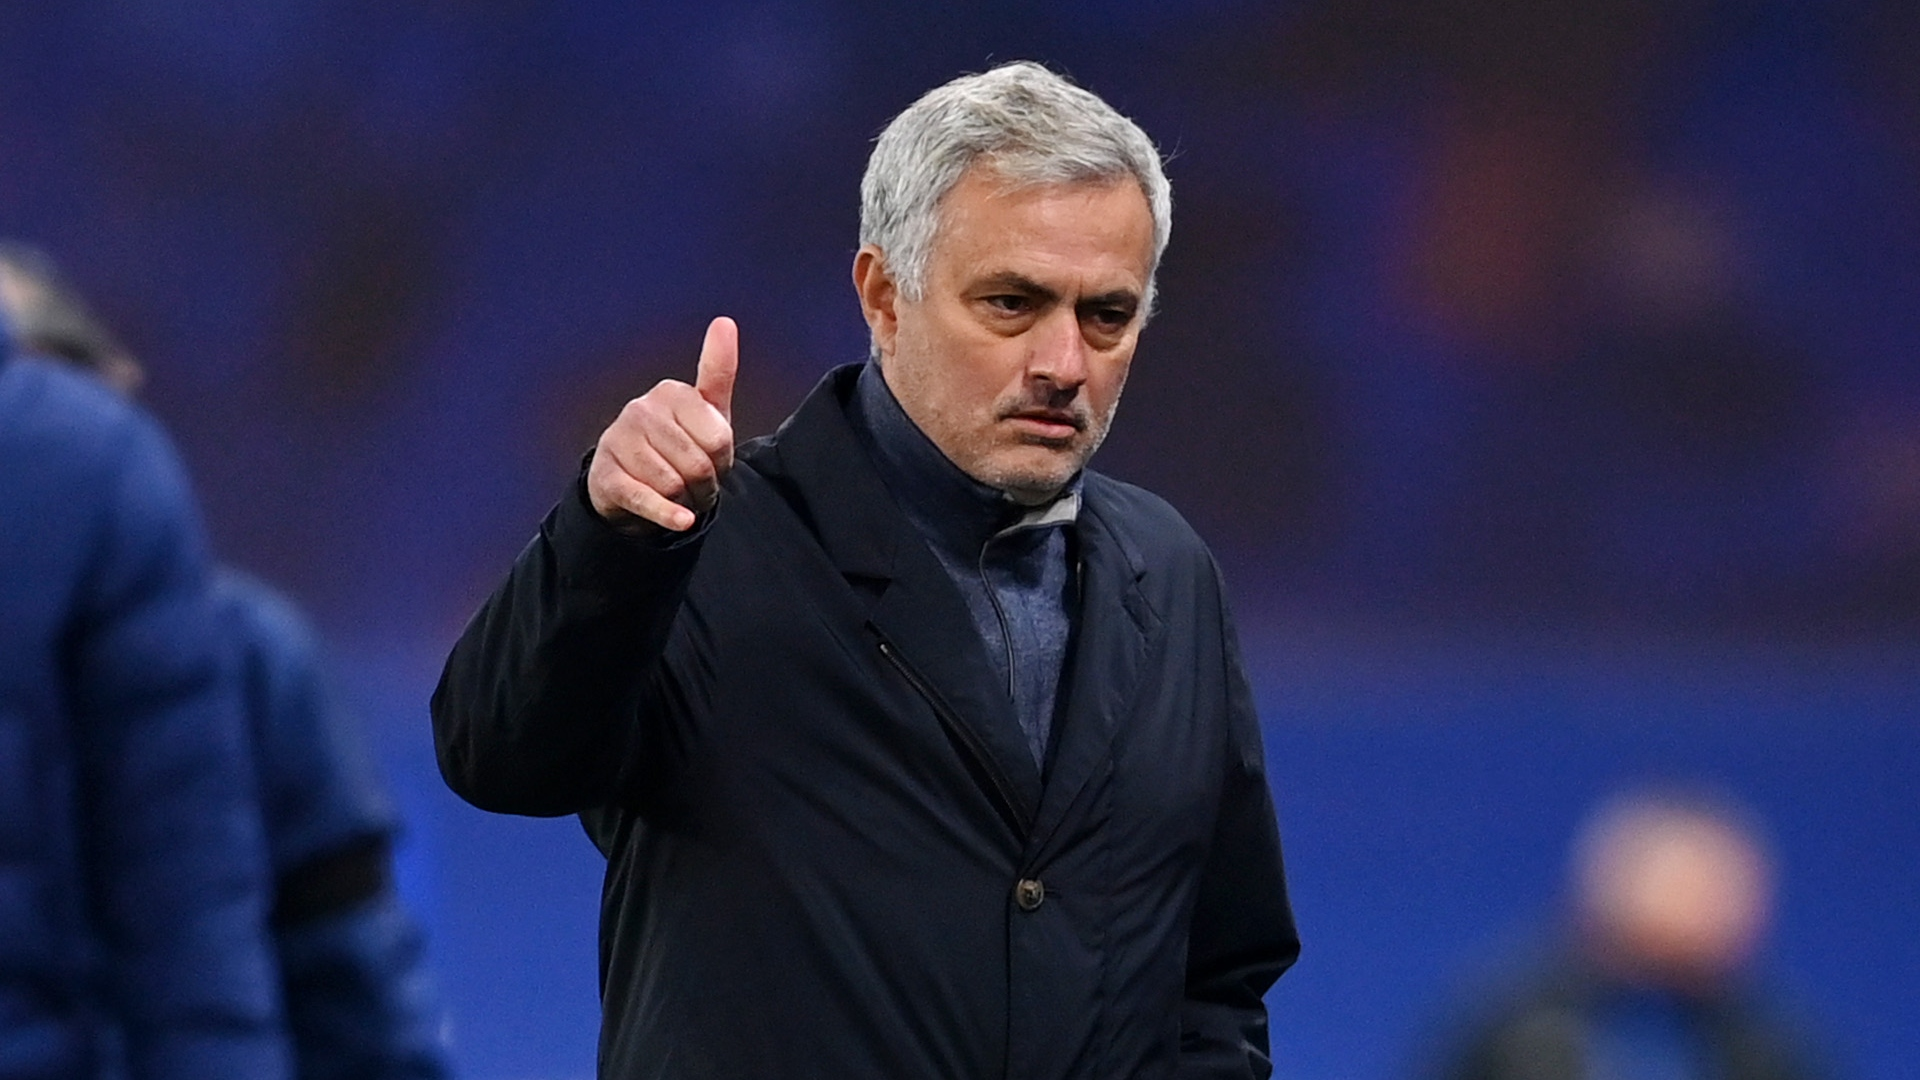 Mourinho vows Spurs are ready to 'fight' to clinch double against Man Utd